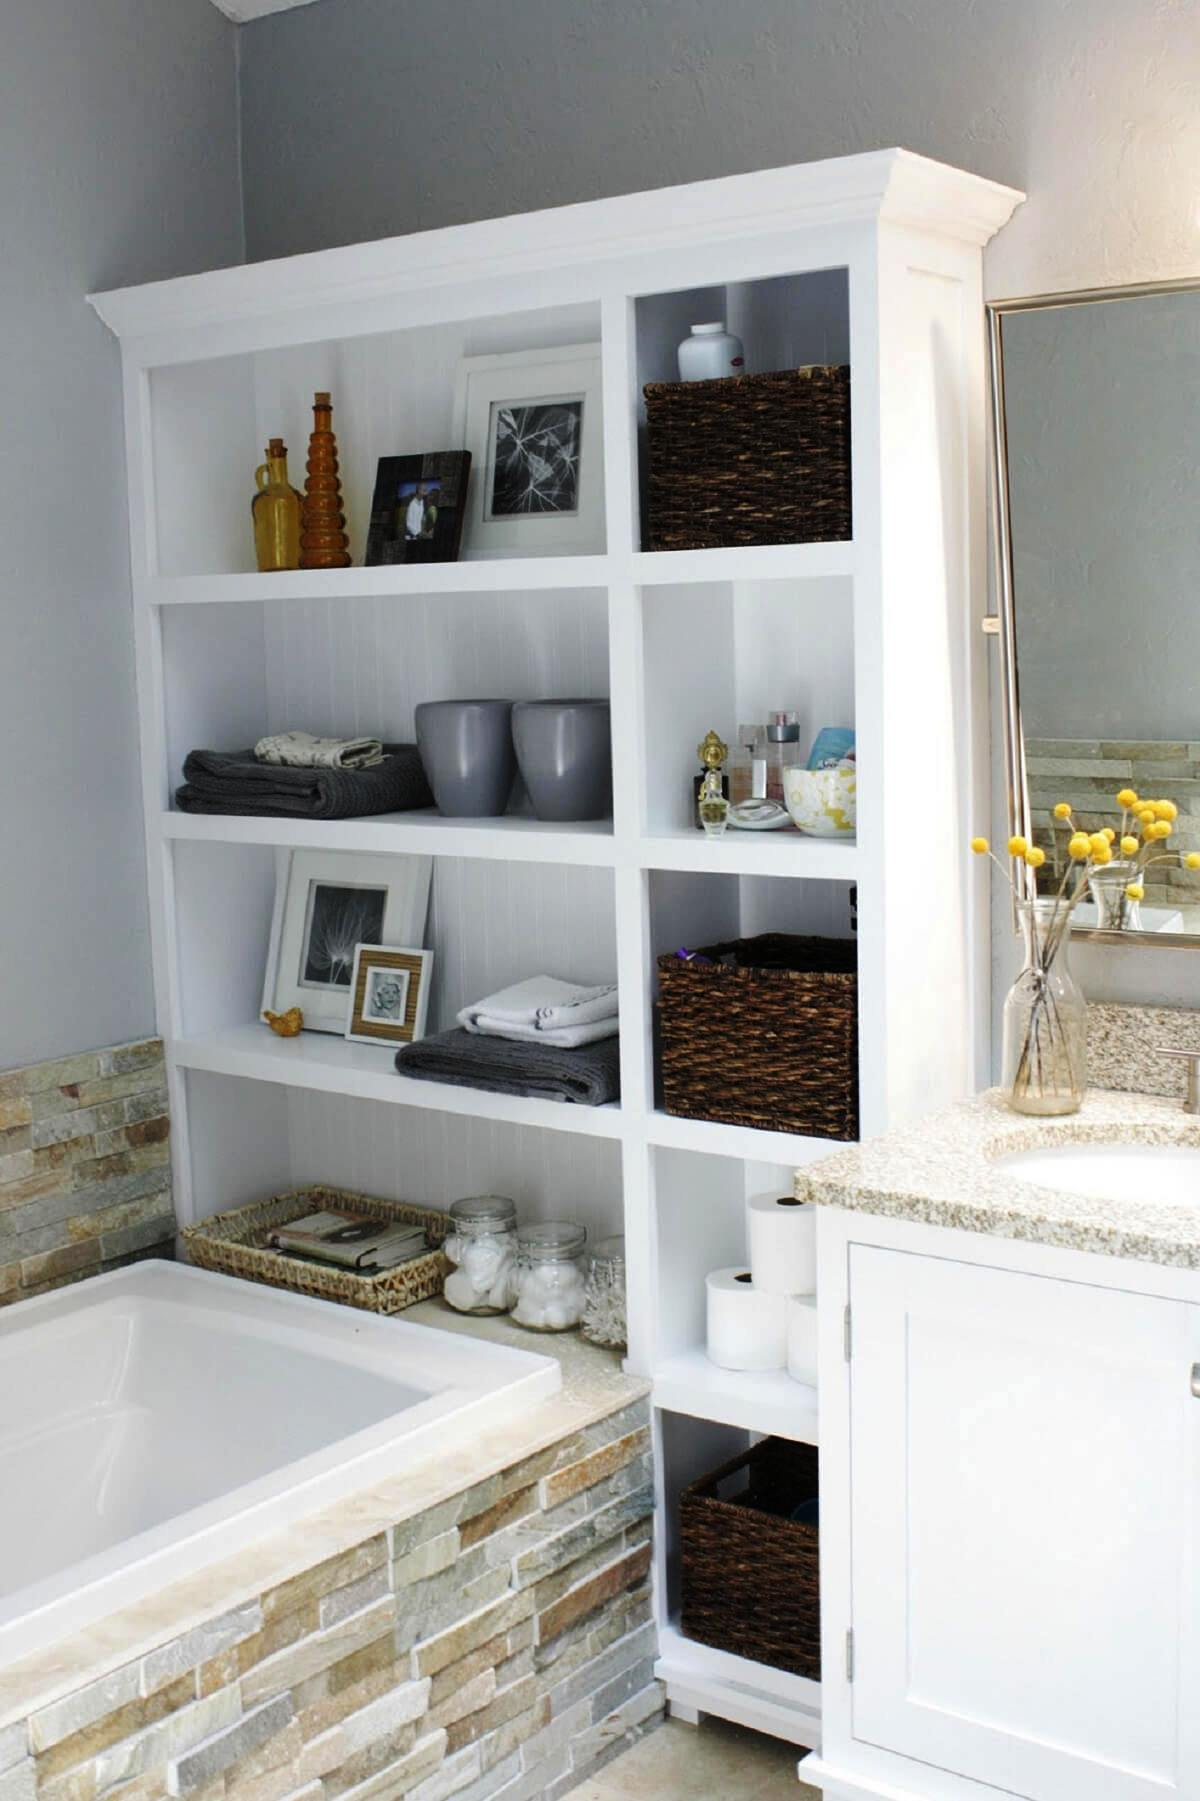 Small Spaces Storage Ideas For Bathrooms (1)